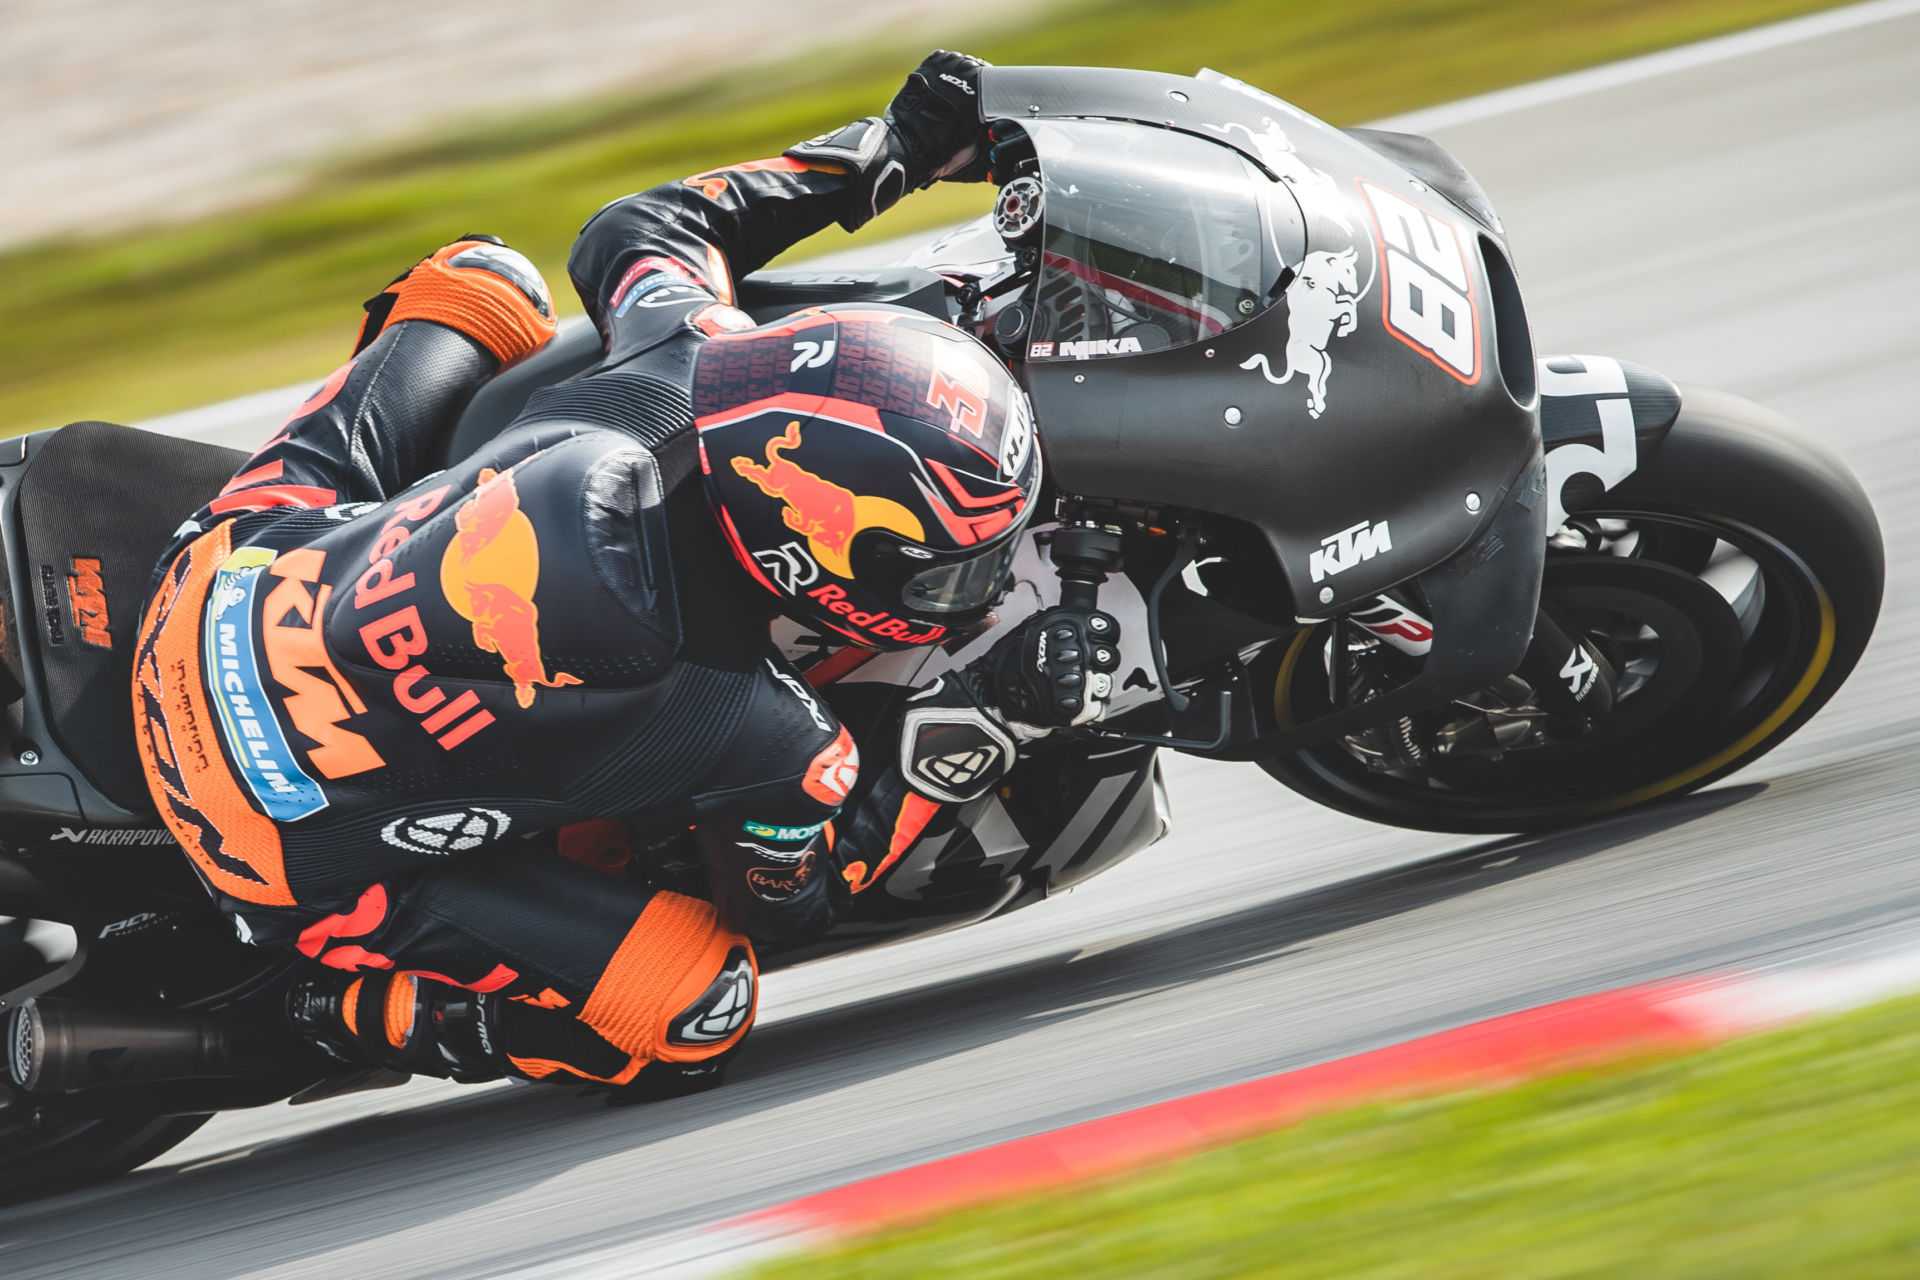 Mika Kallio (82) during the MotoGP pre-season test at Sepang in February 2020. Photo courtesy KTM Factory Racing.